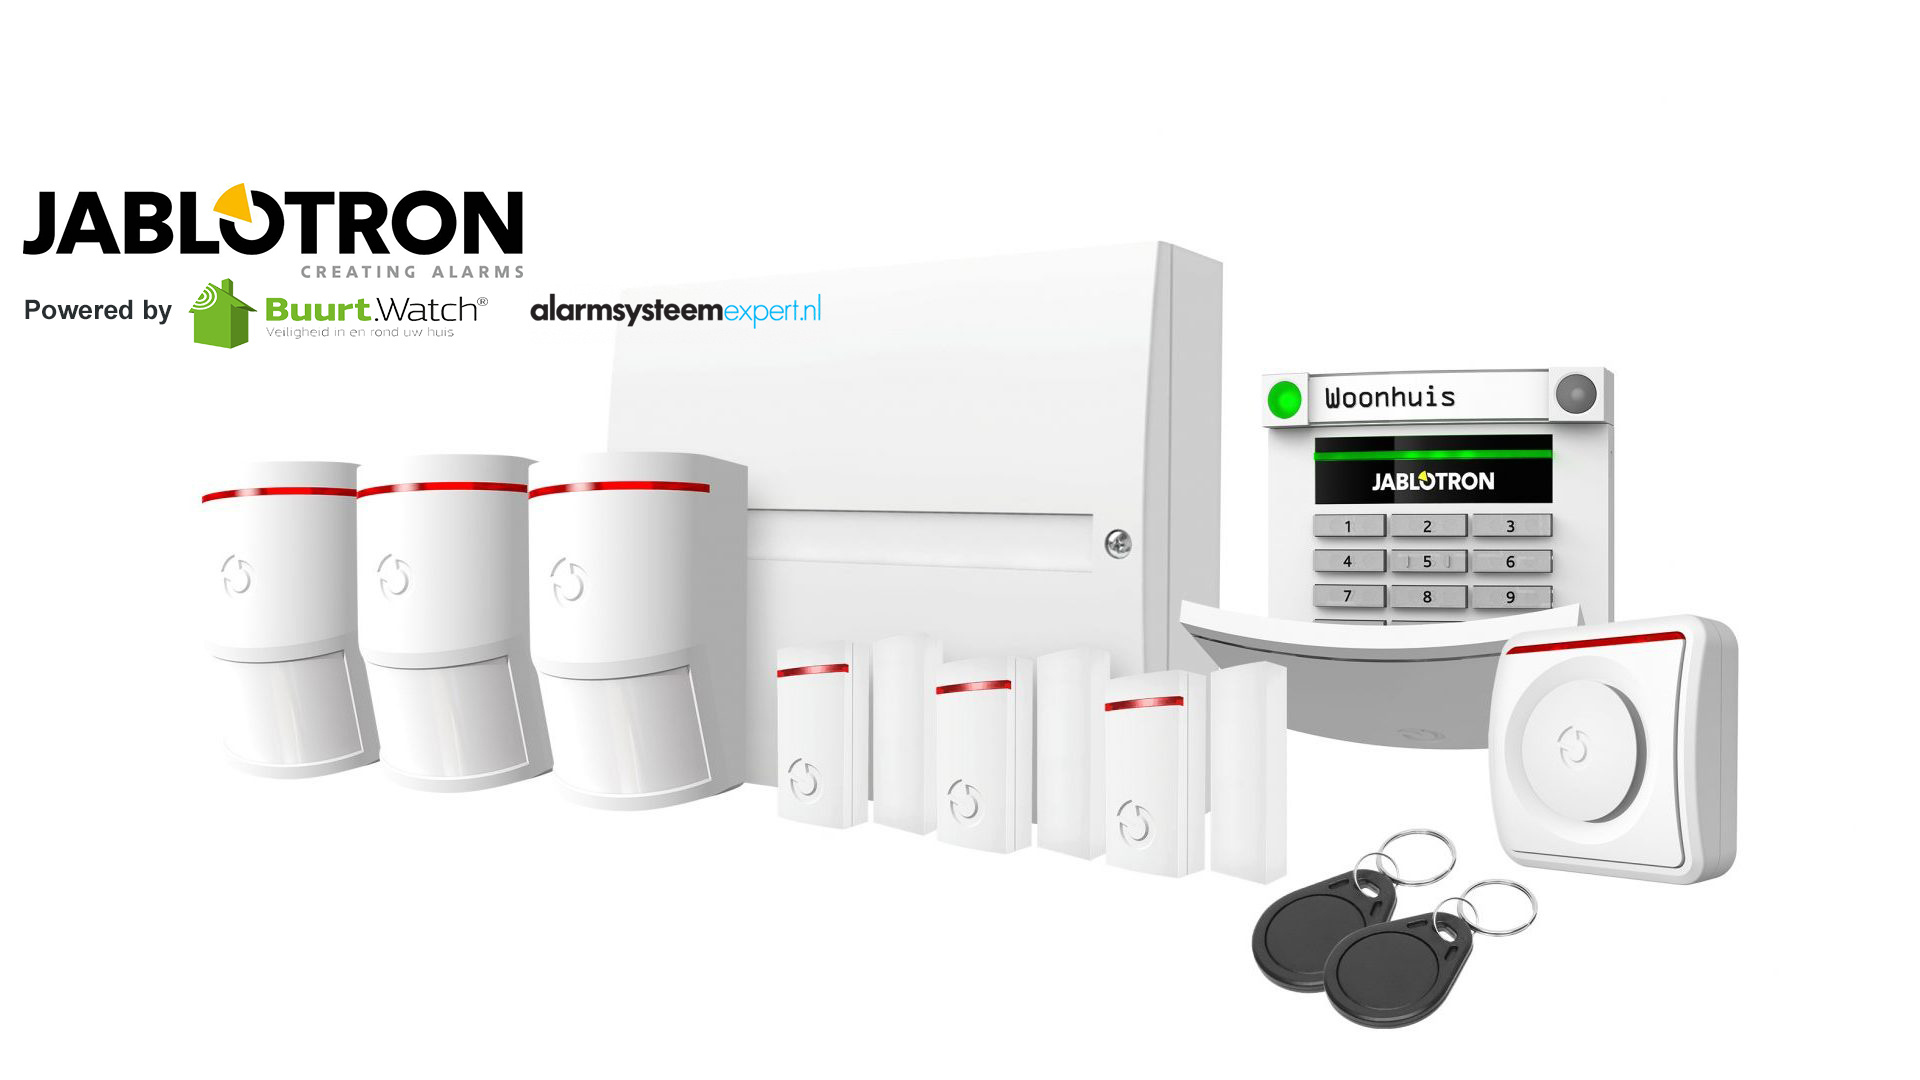 Very comprehensive basic kit for complete security. This kit consists of: 1 x JA-101KR-LAN / GSM center 3 x JA-150P motion detector 3 x JA-151M mini magnetic contact 1 x JA-110A indoor siren 1 x JA-113E code control panel 2 x PC-02B RFID tag 1 x battery s